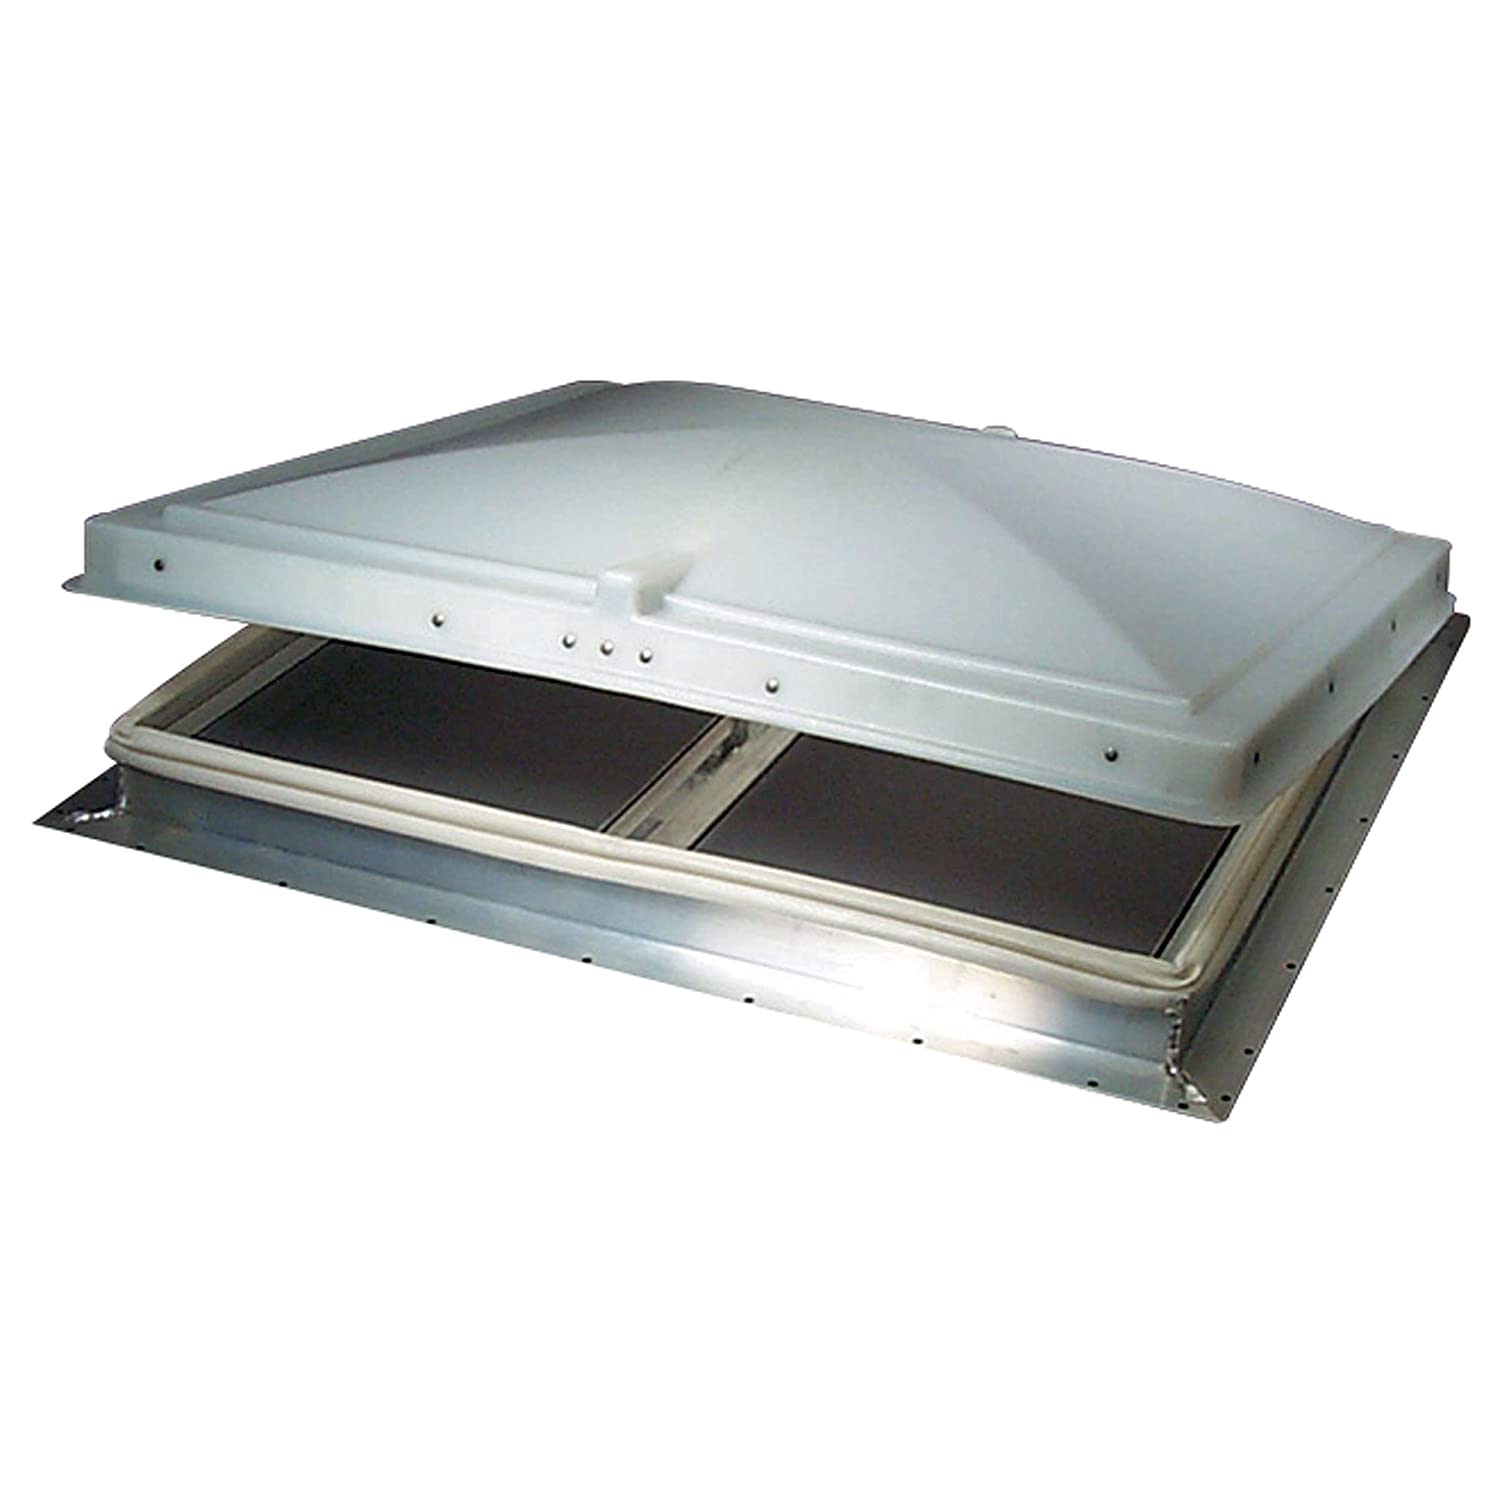 Heng's 68631-2 26' X 26' Elixir Escape Hatch with 2' White Metal Garnish Heng' s 0503.1002